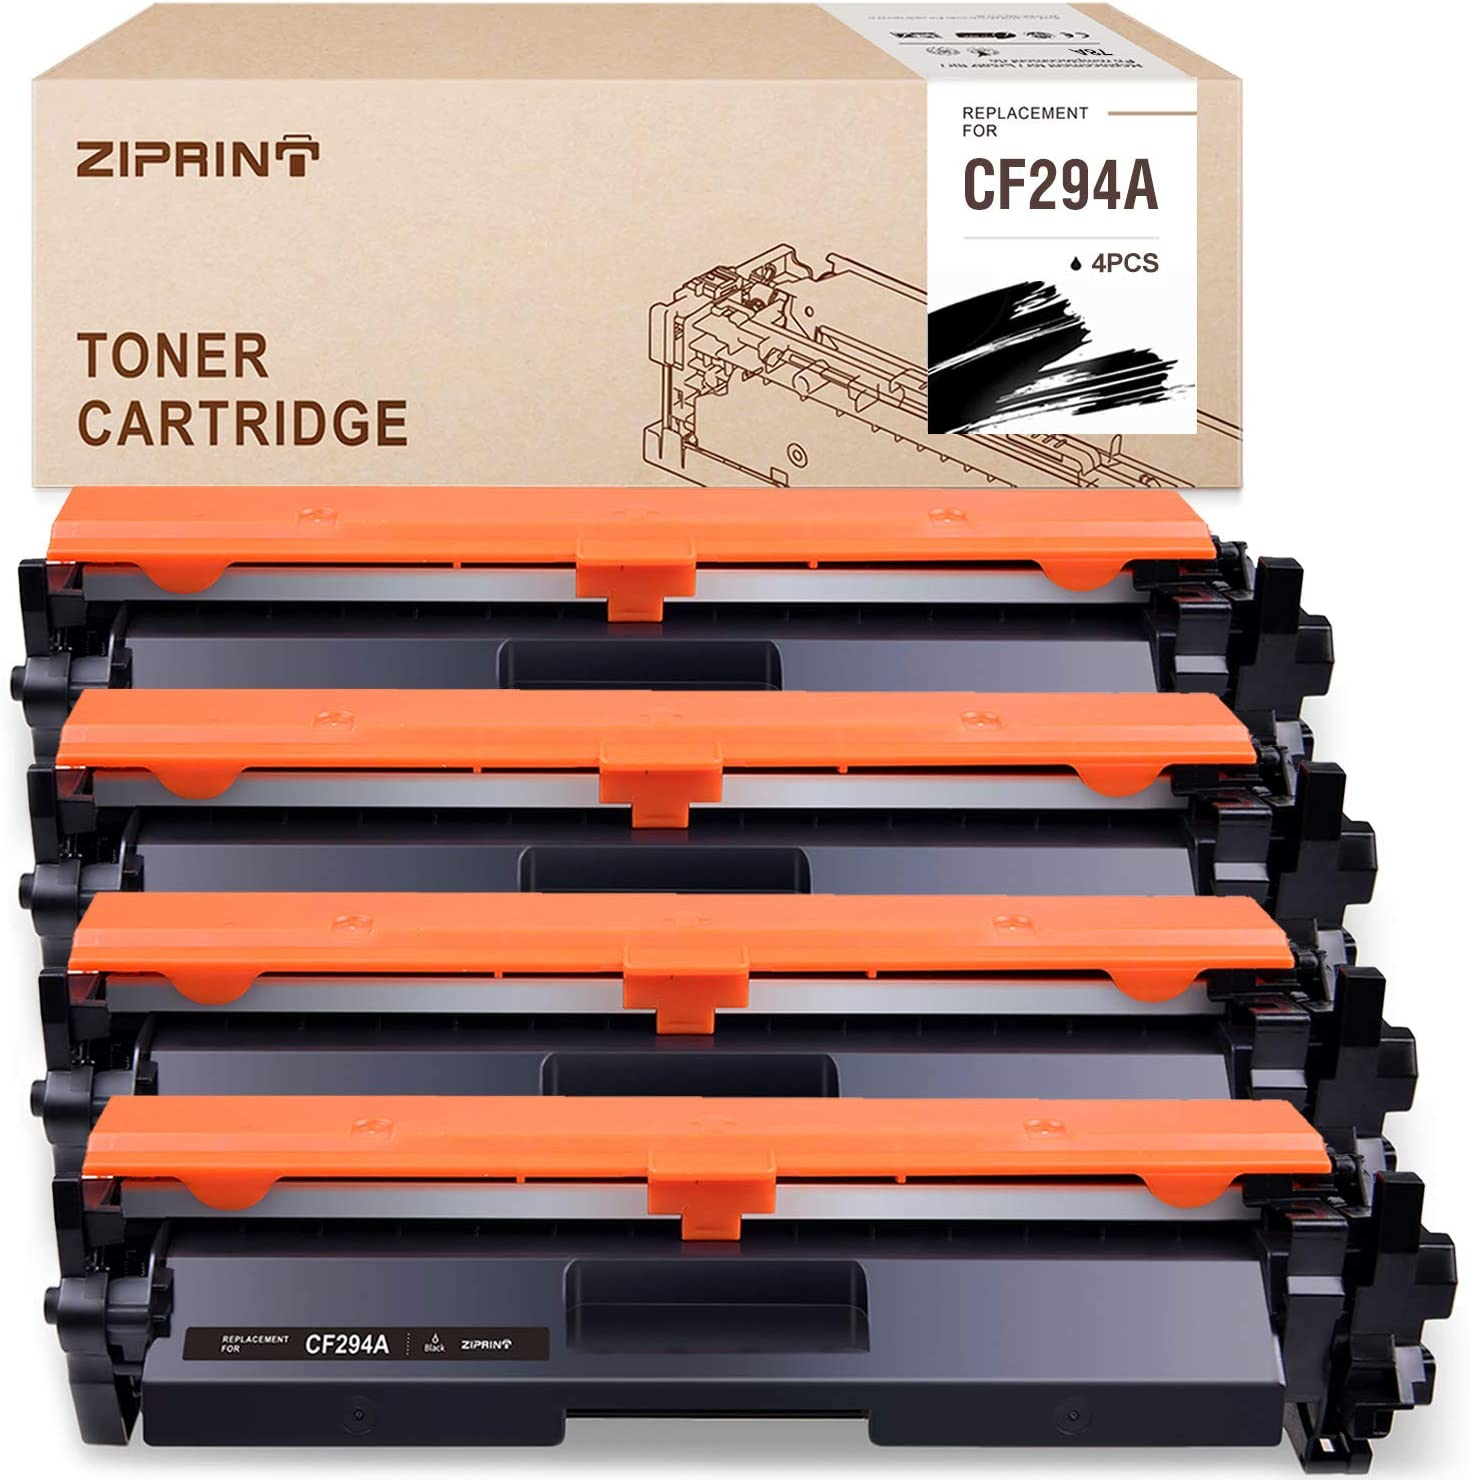 ZIPRINT Compatible Toner Cartridge Replacement for HP 94A 94X CF294A for use with HP Laserjet Pro M118dw MFP M148dw MFP M148fdw Printer(Black, 4-Pack)